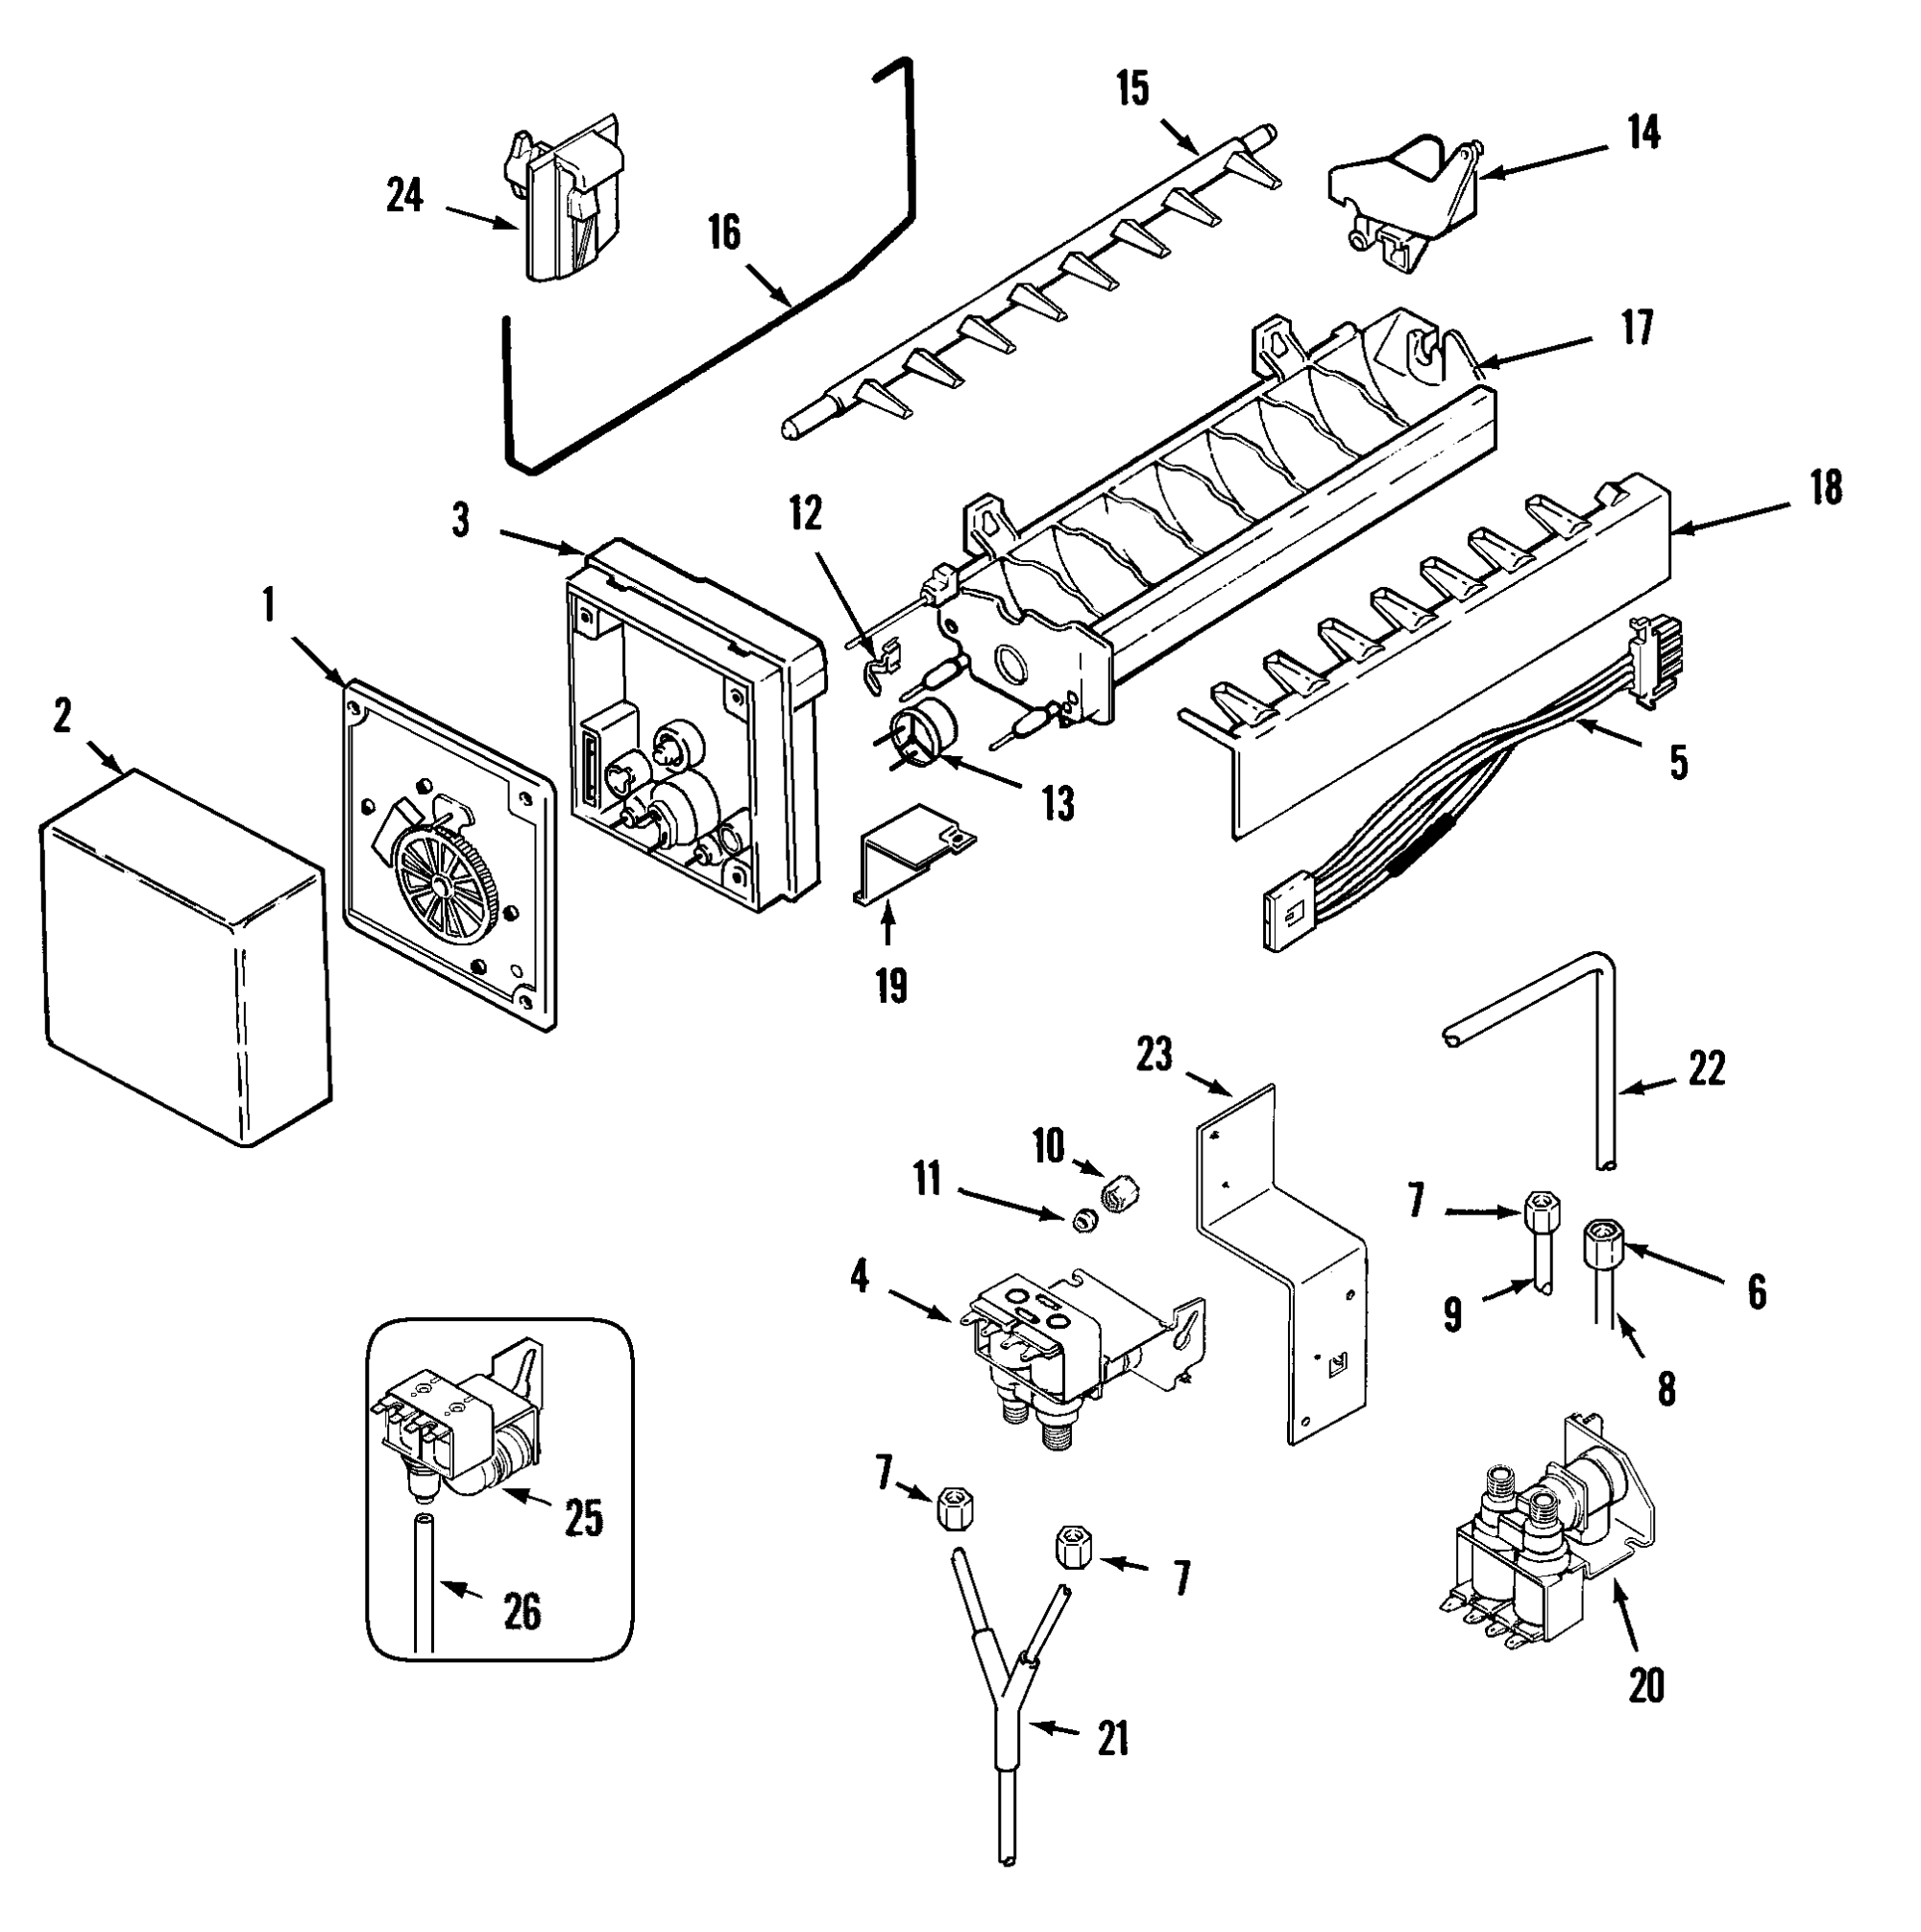 hight resolution of sears whirlpool ice maker wiring diagram